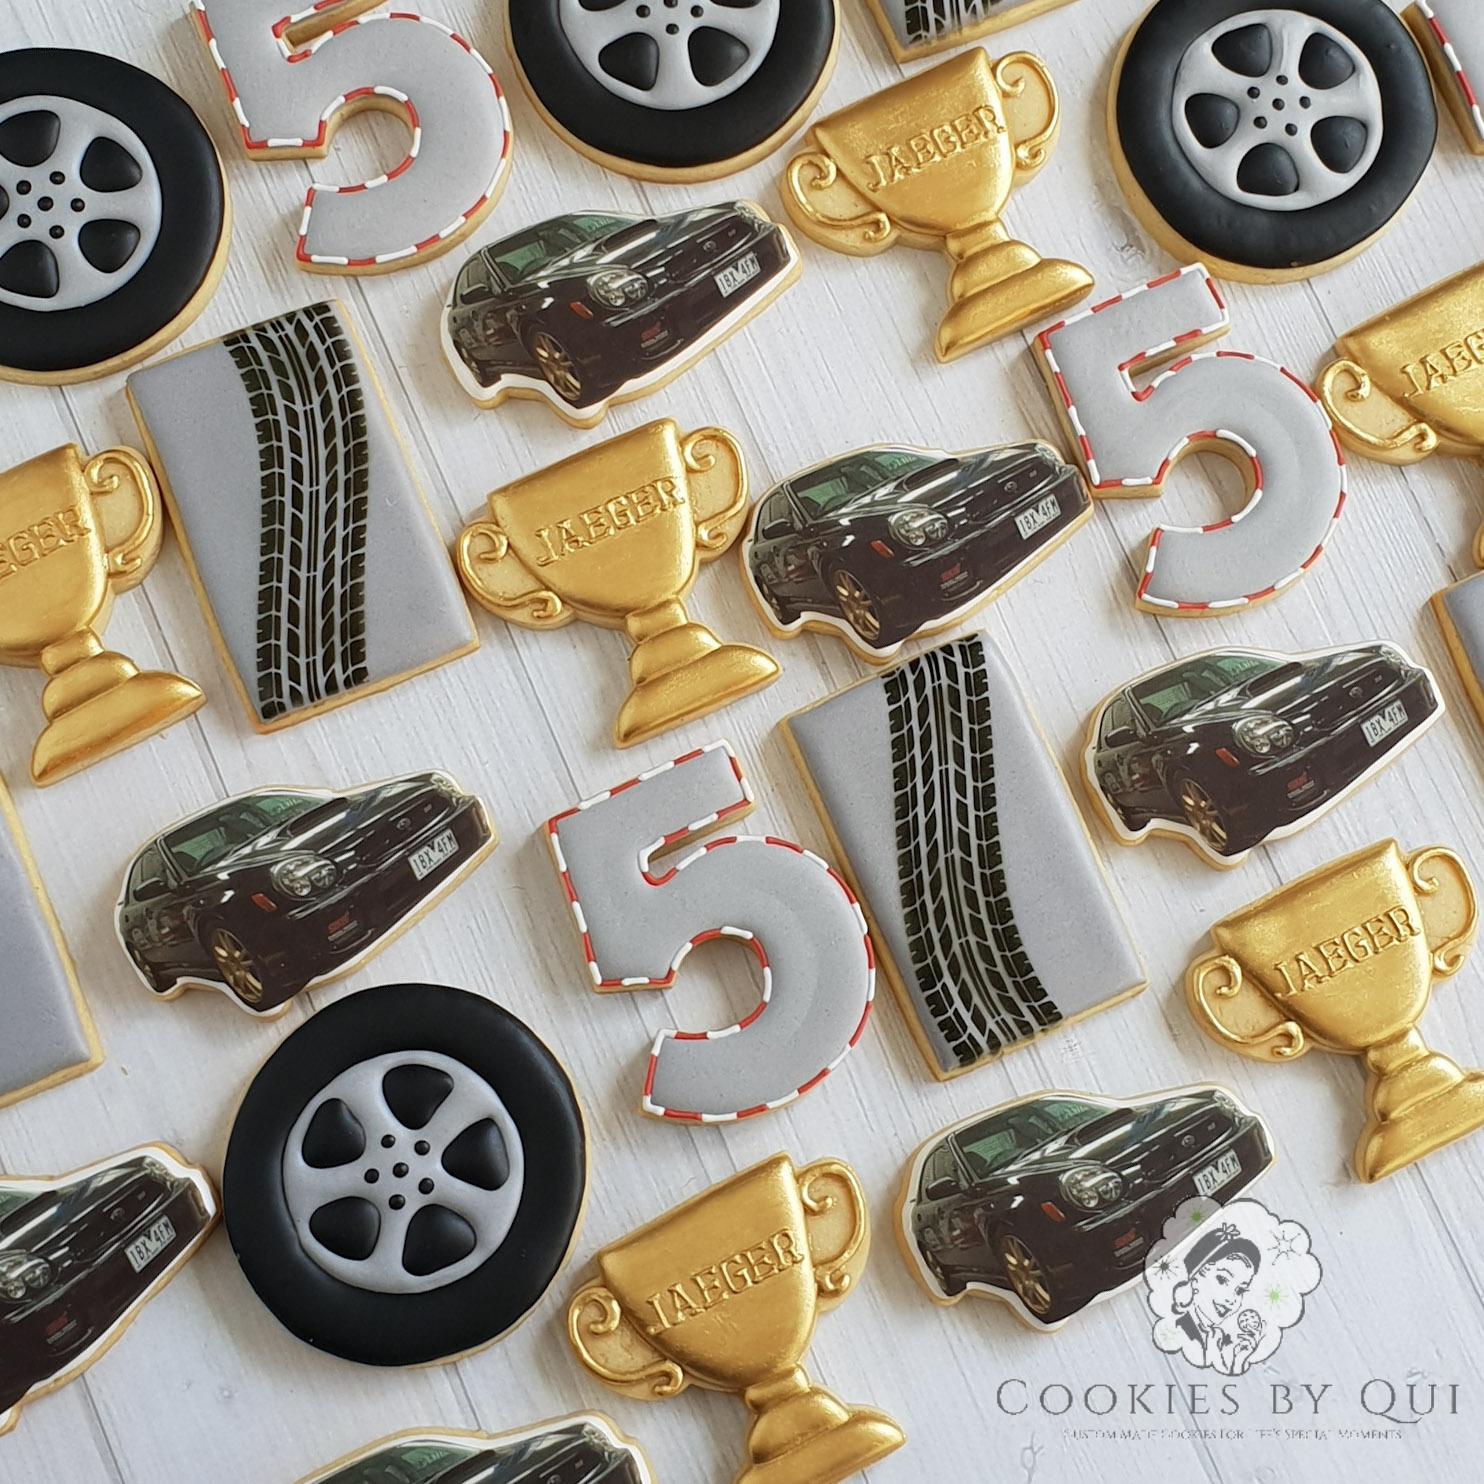 Mechanic Rev Head Adrenaline Car Go Kart Themed Birthday Cookies